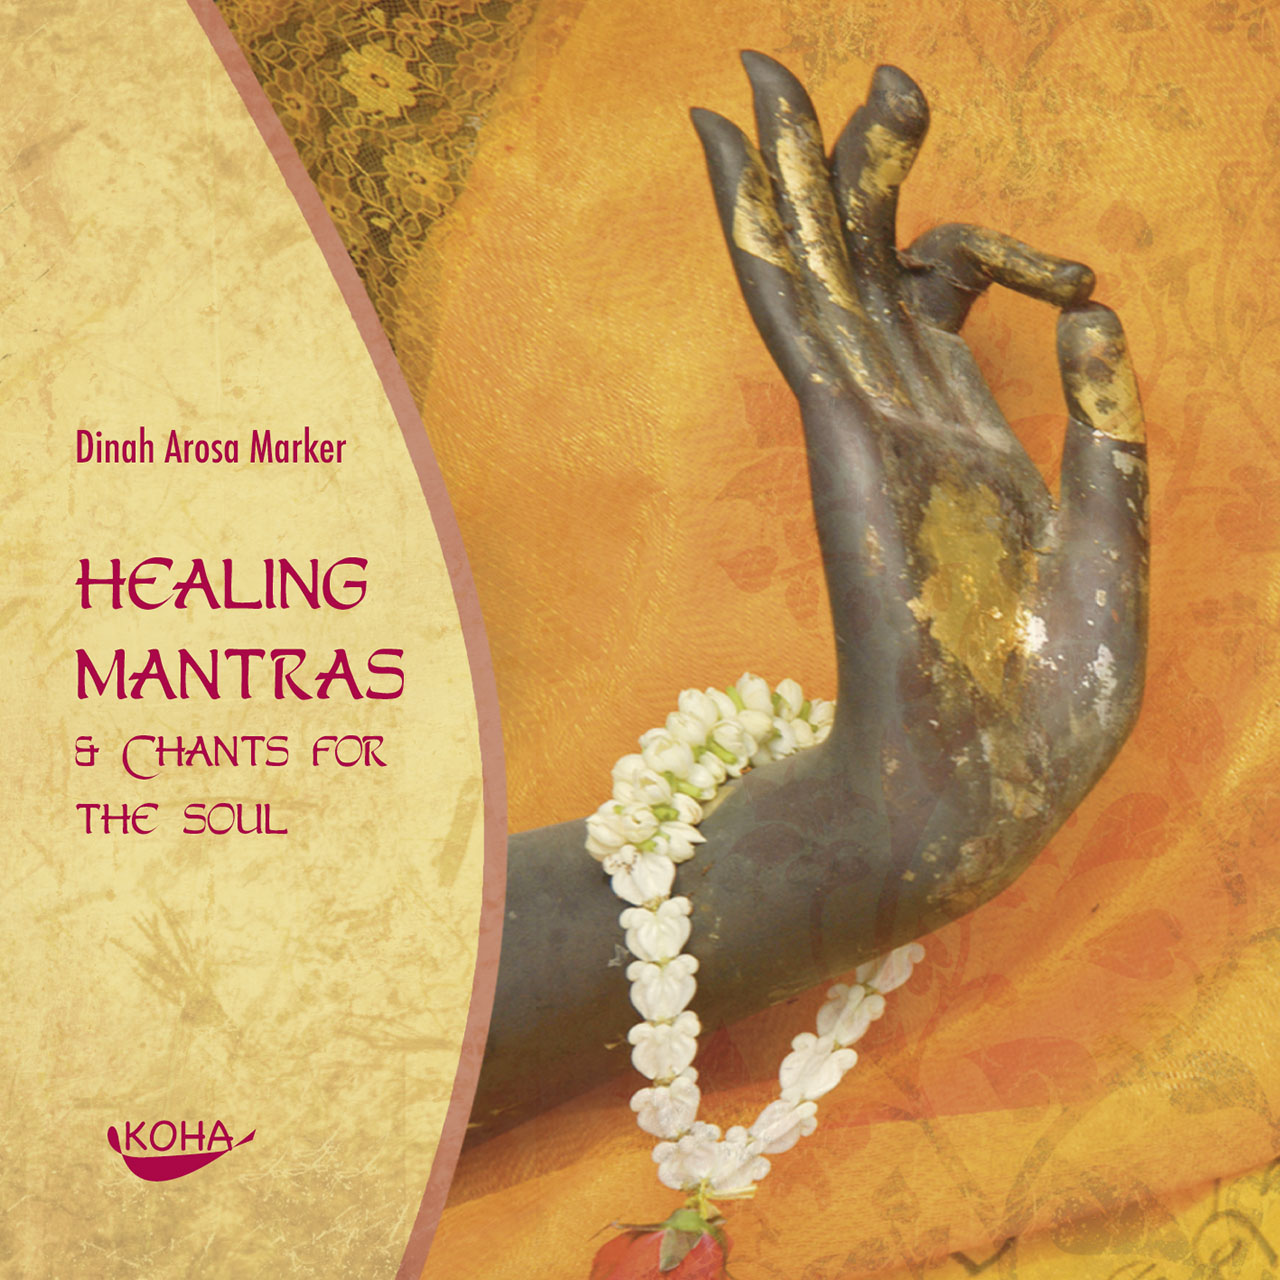 Healing Mantras & Chants for the Soul Dinah Arosa Marker